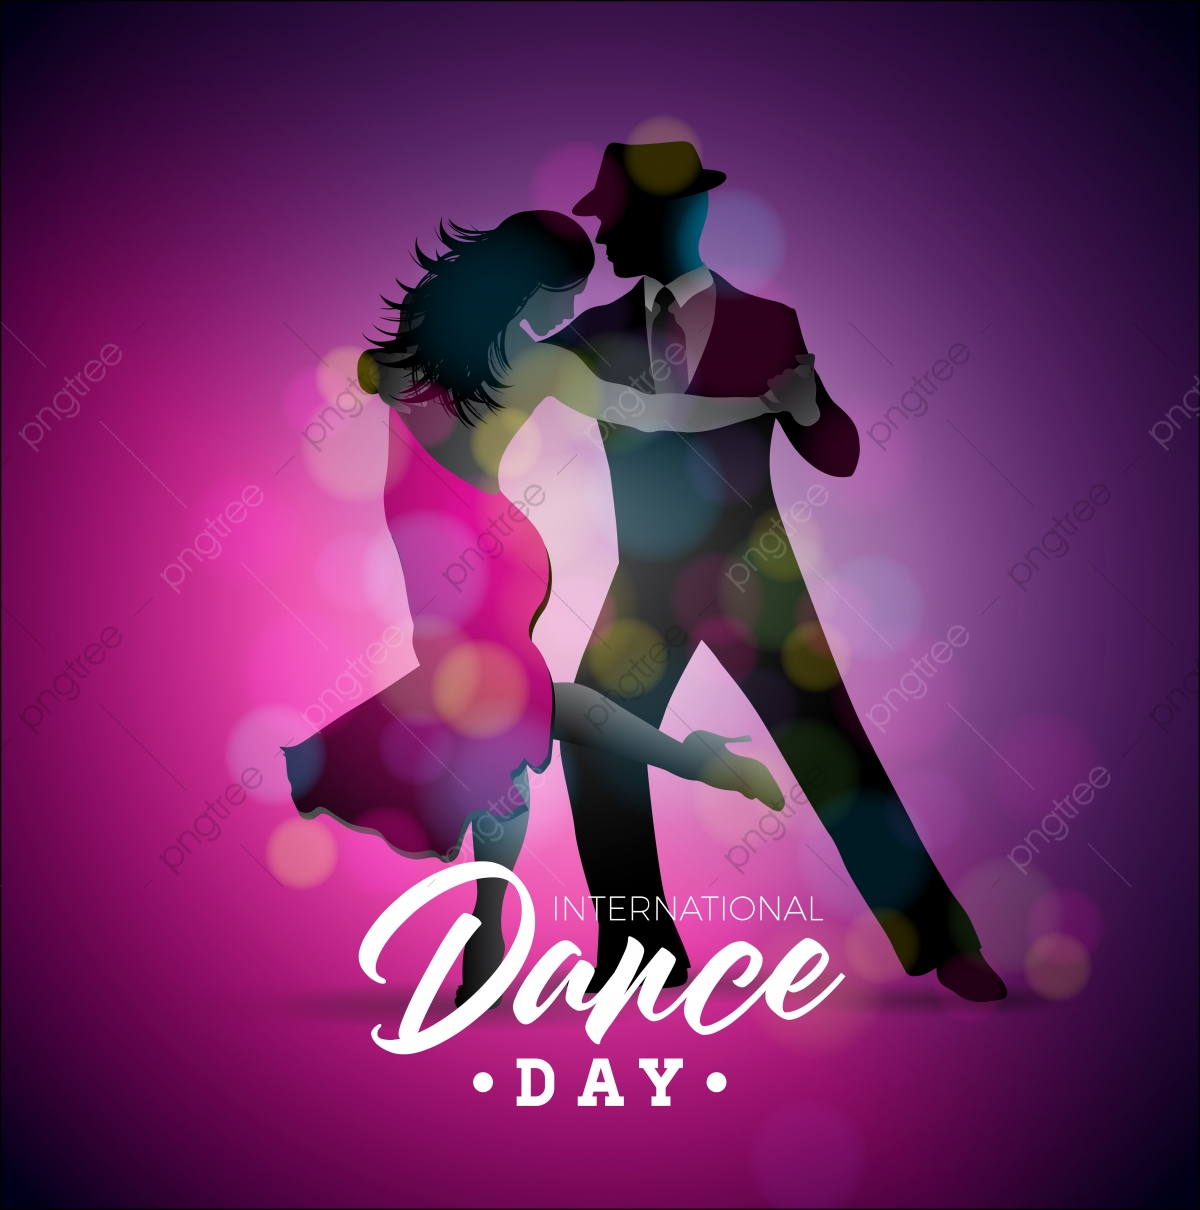 International Dance Day Vector Illustration With Tango Dancing Couple On Purple Background Design Template For Banner Flyer Invitation Brochure Poster Or Greeting Card Dance Background Day Png And Vector With Transparent Background